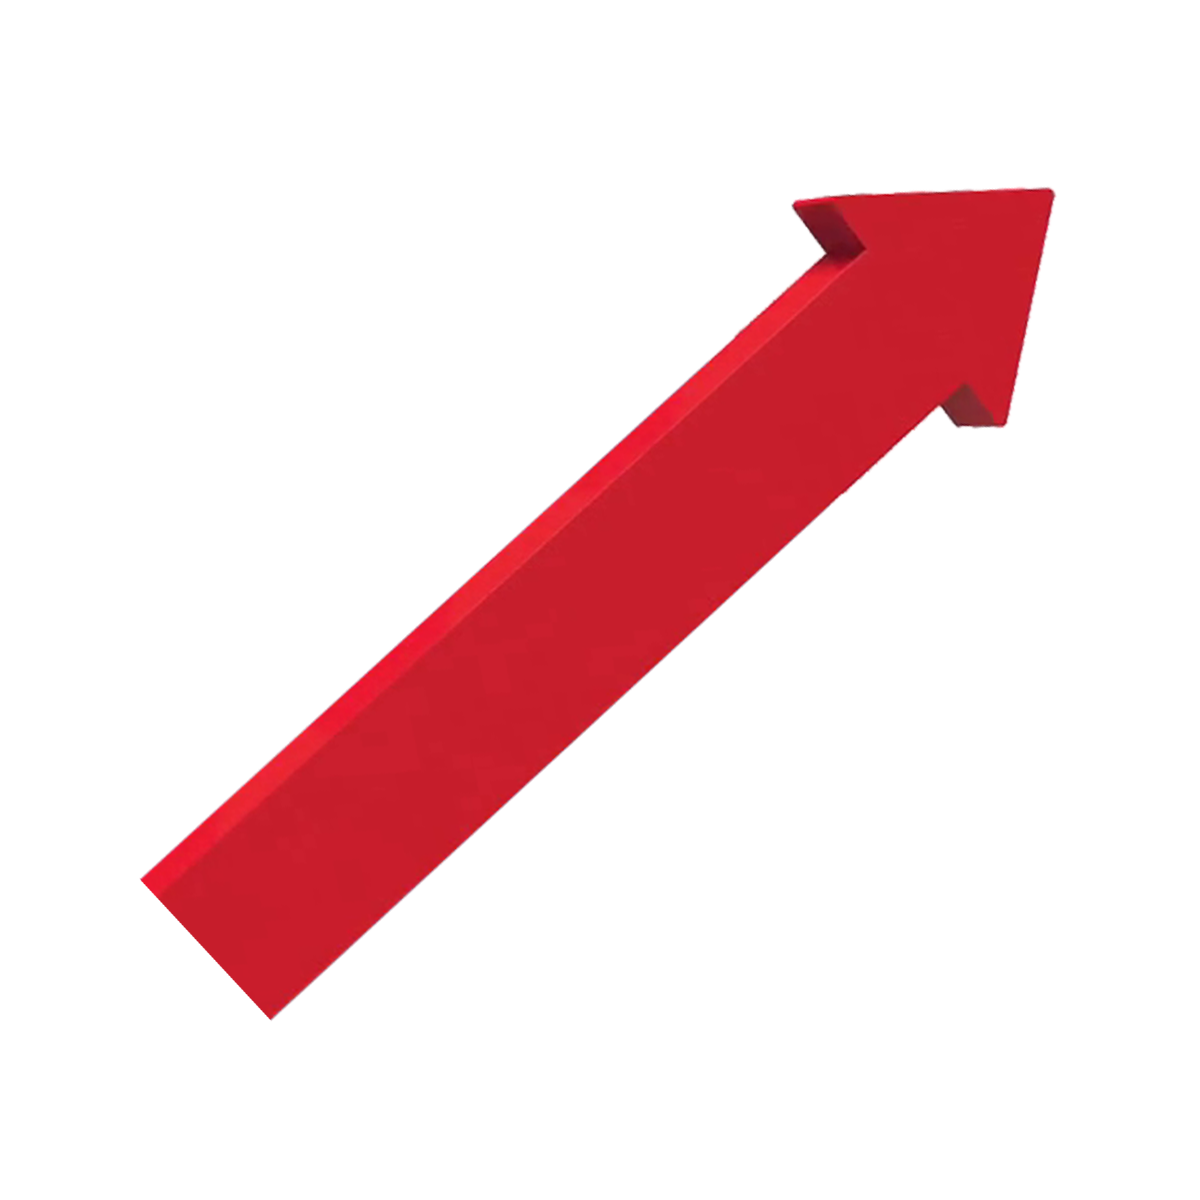 Free Download High Quality 3d Arrow Png Transparent Background Red Color Its A Red Color High Quality Arro Transparent Background Transparent Youtube Thumbnail